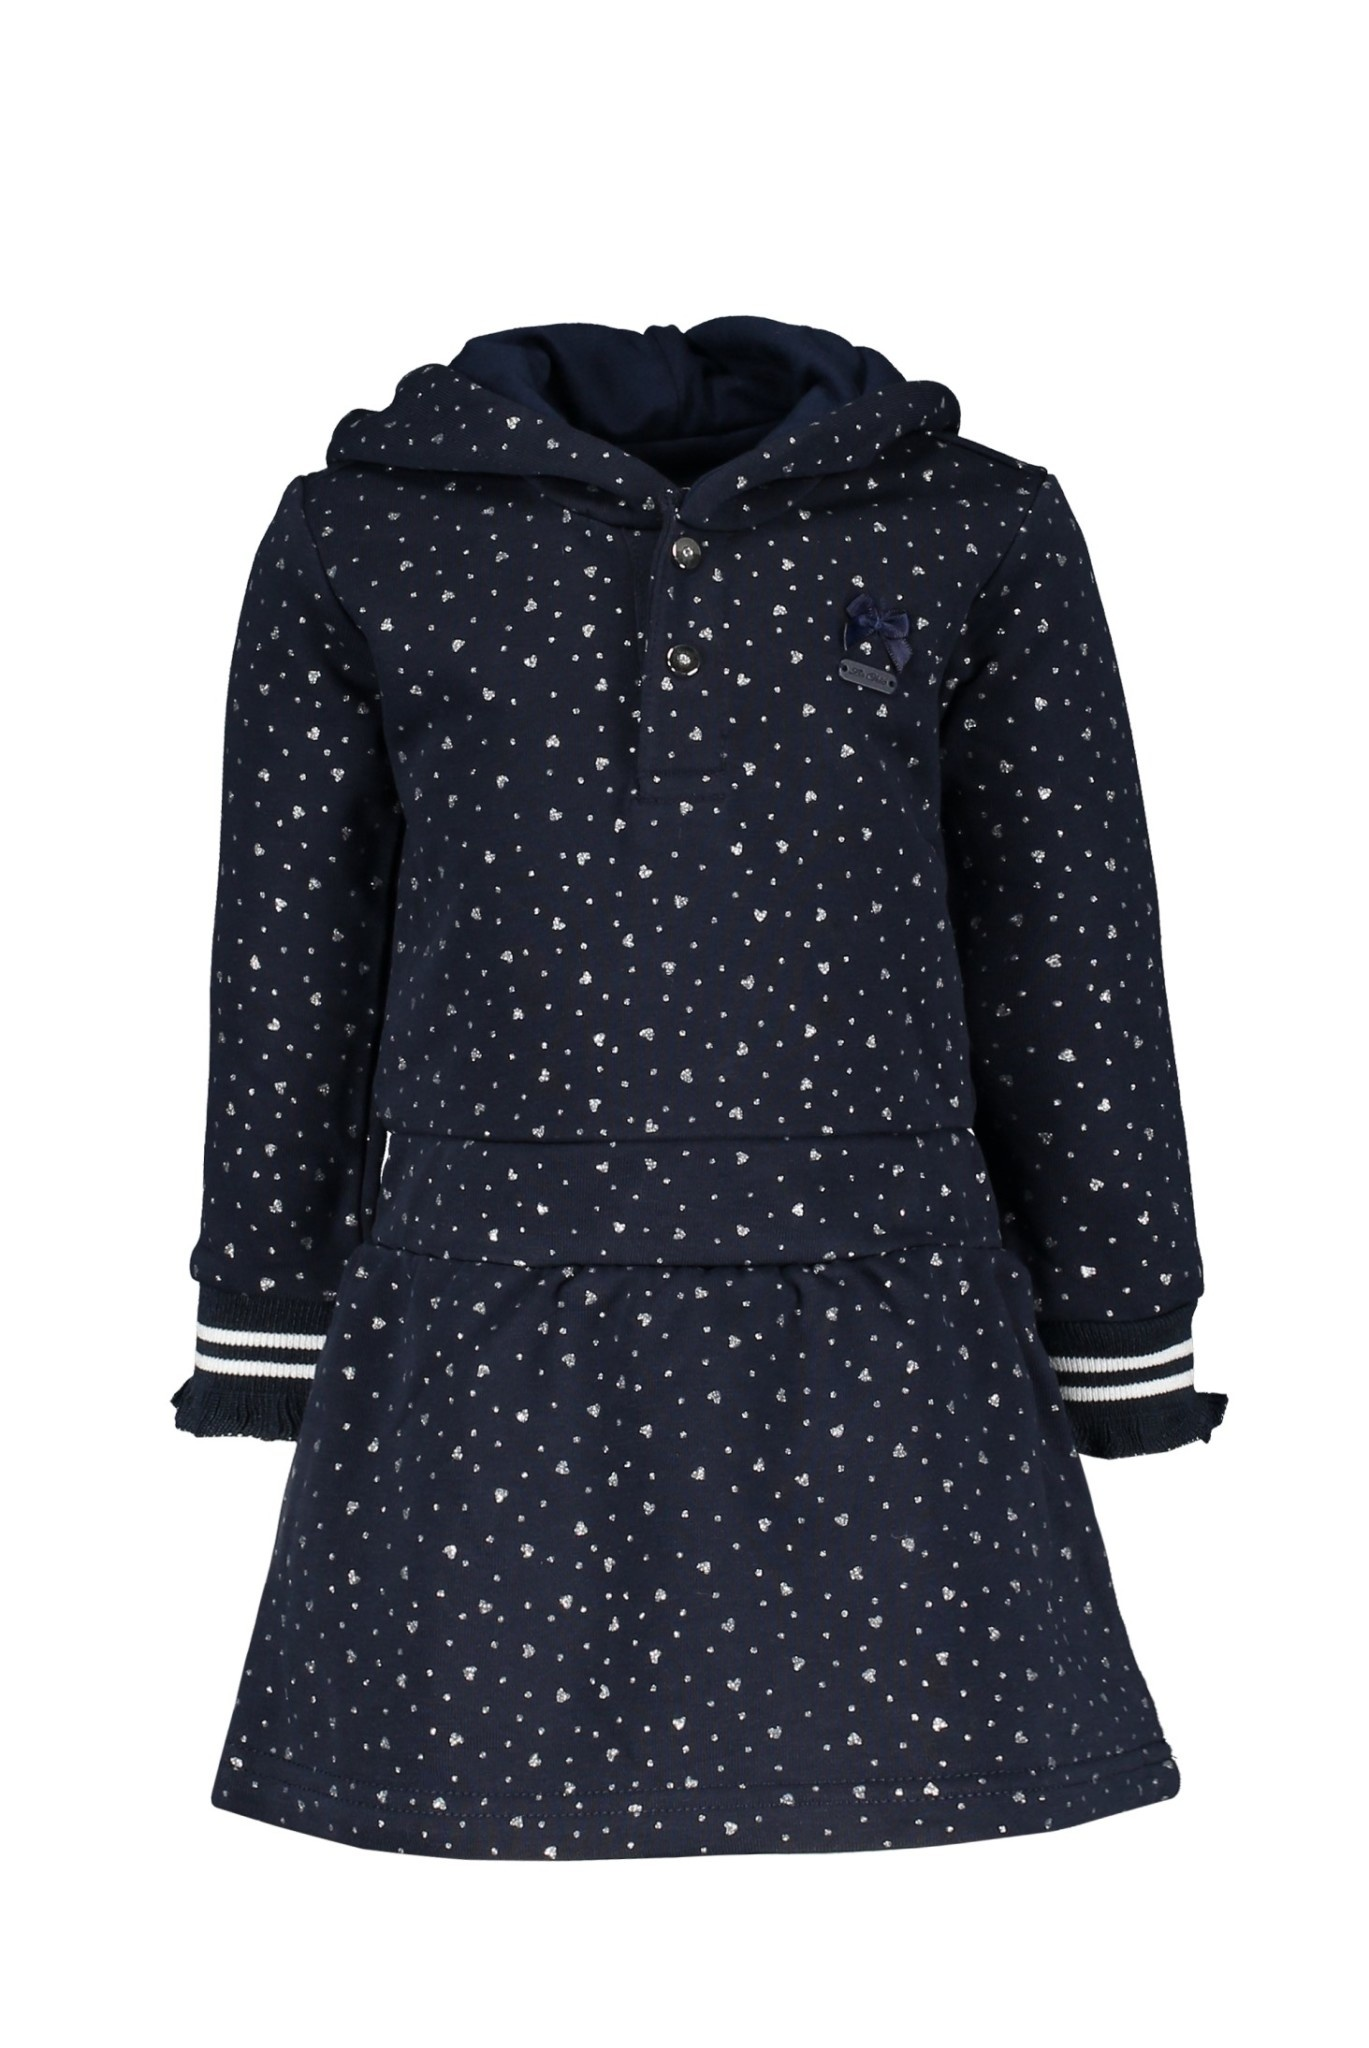 Sammy Hearts and Dots Hooded Dress